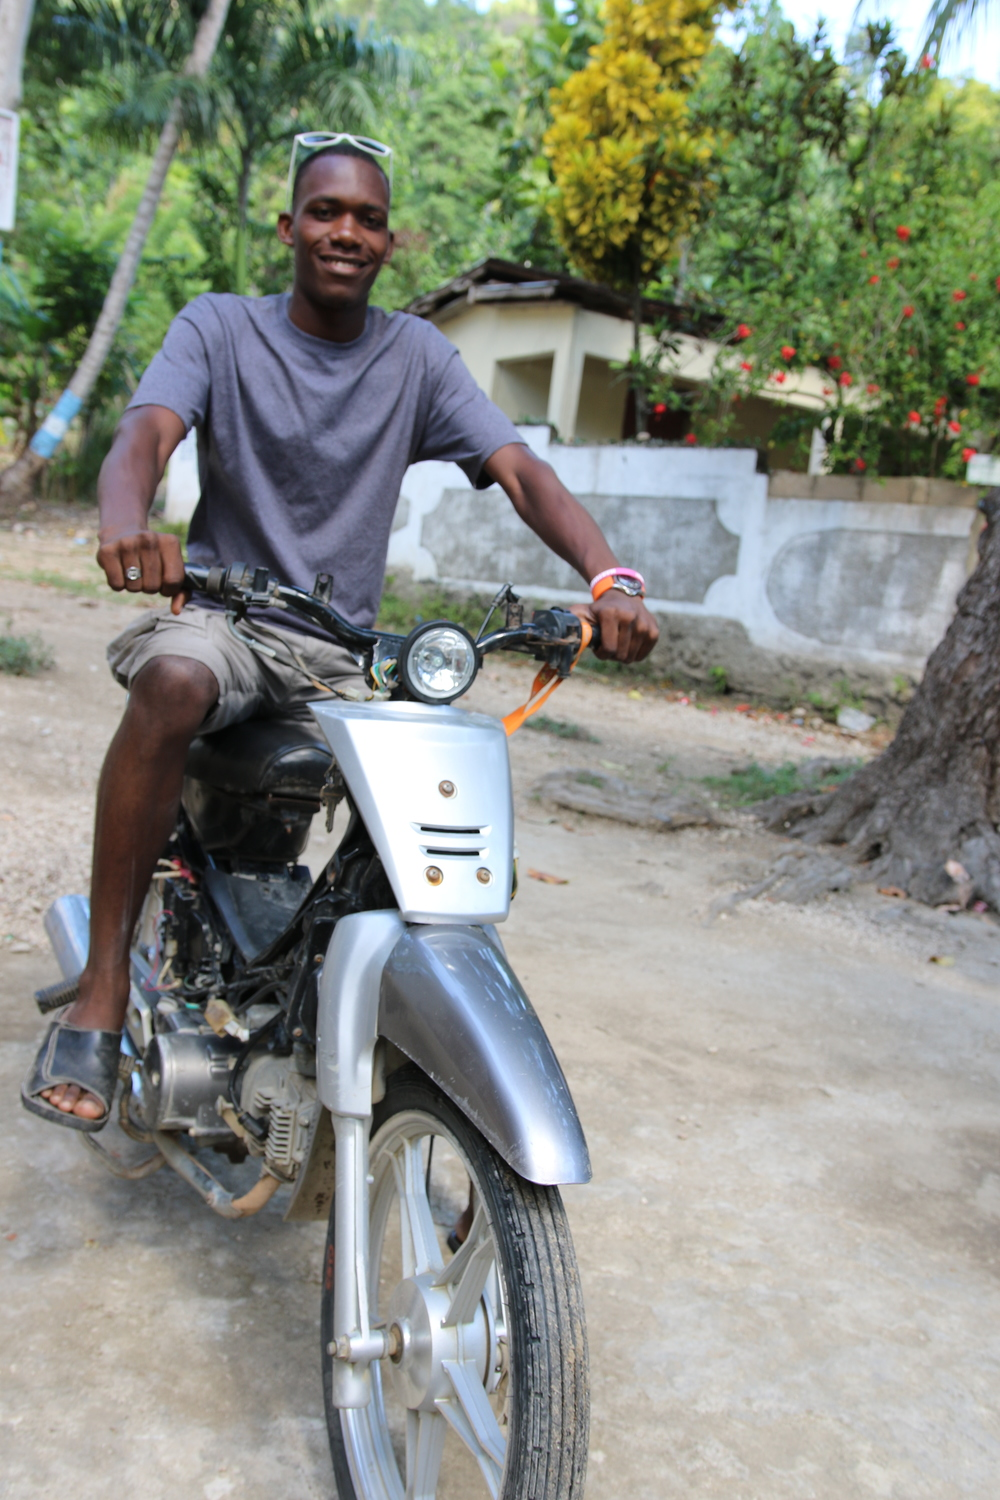 Haitian on a motorbike in Bassin Bleu